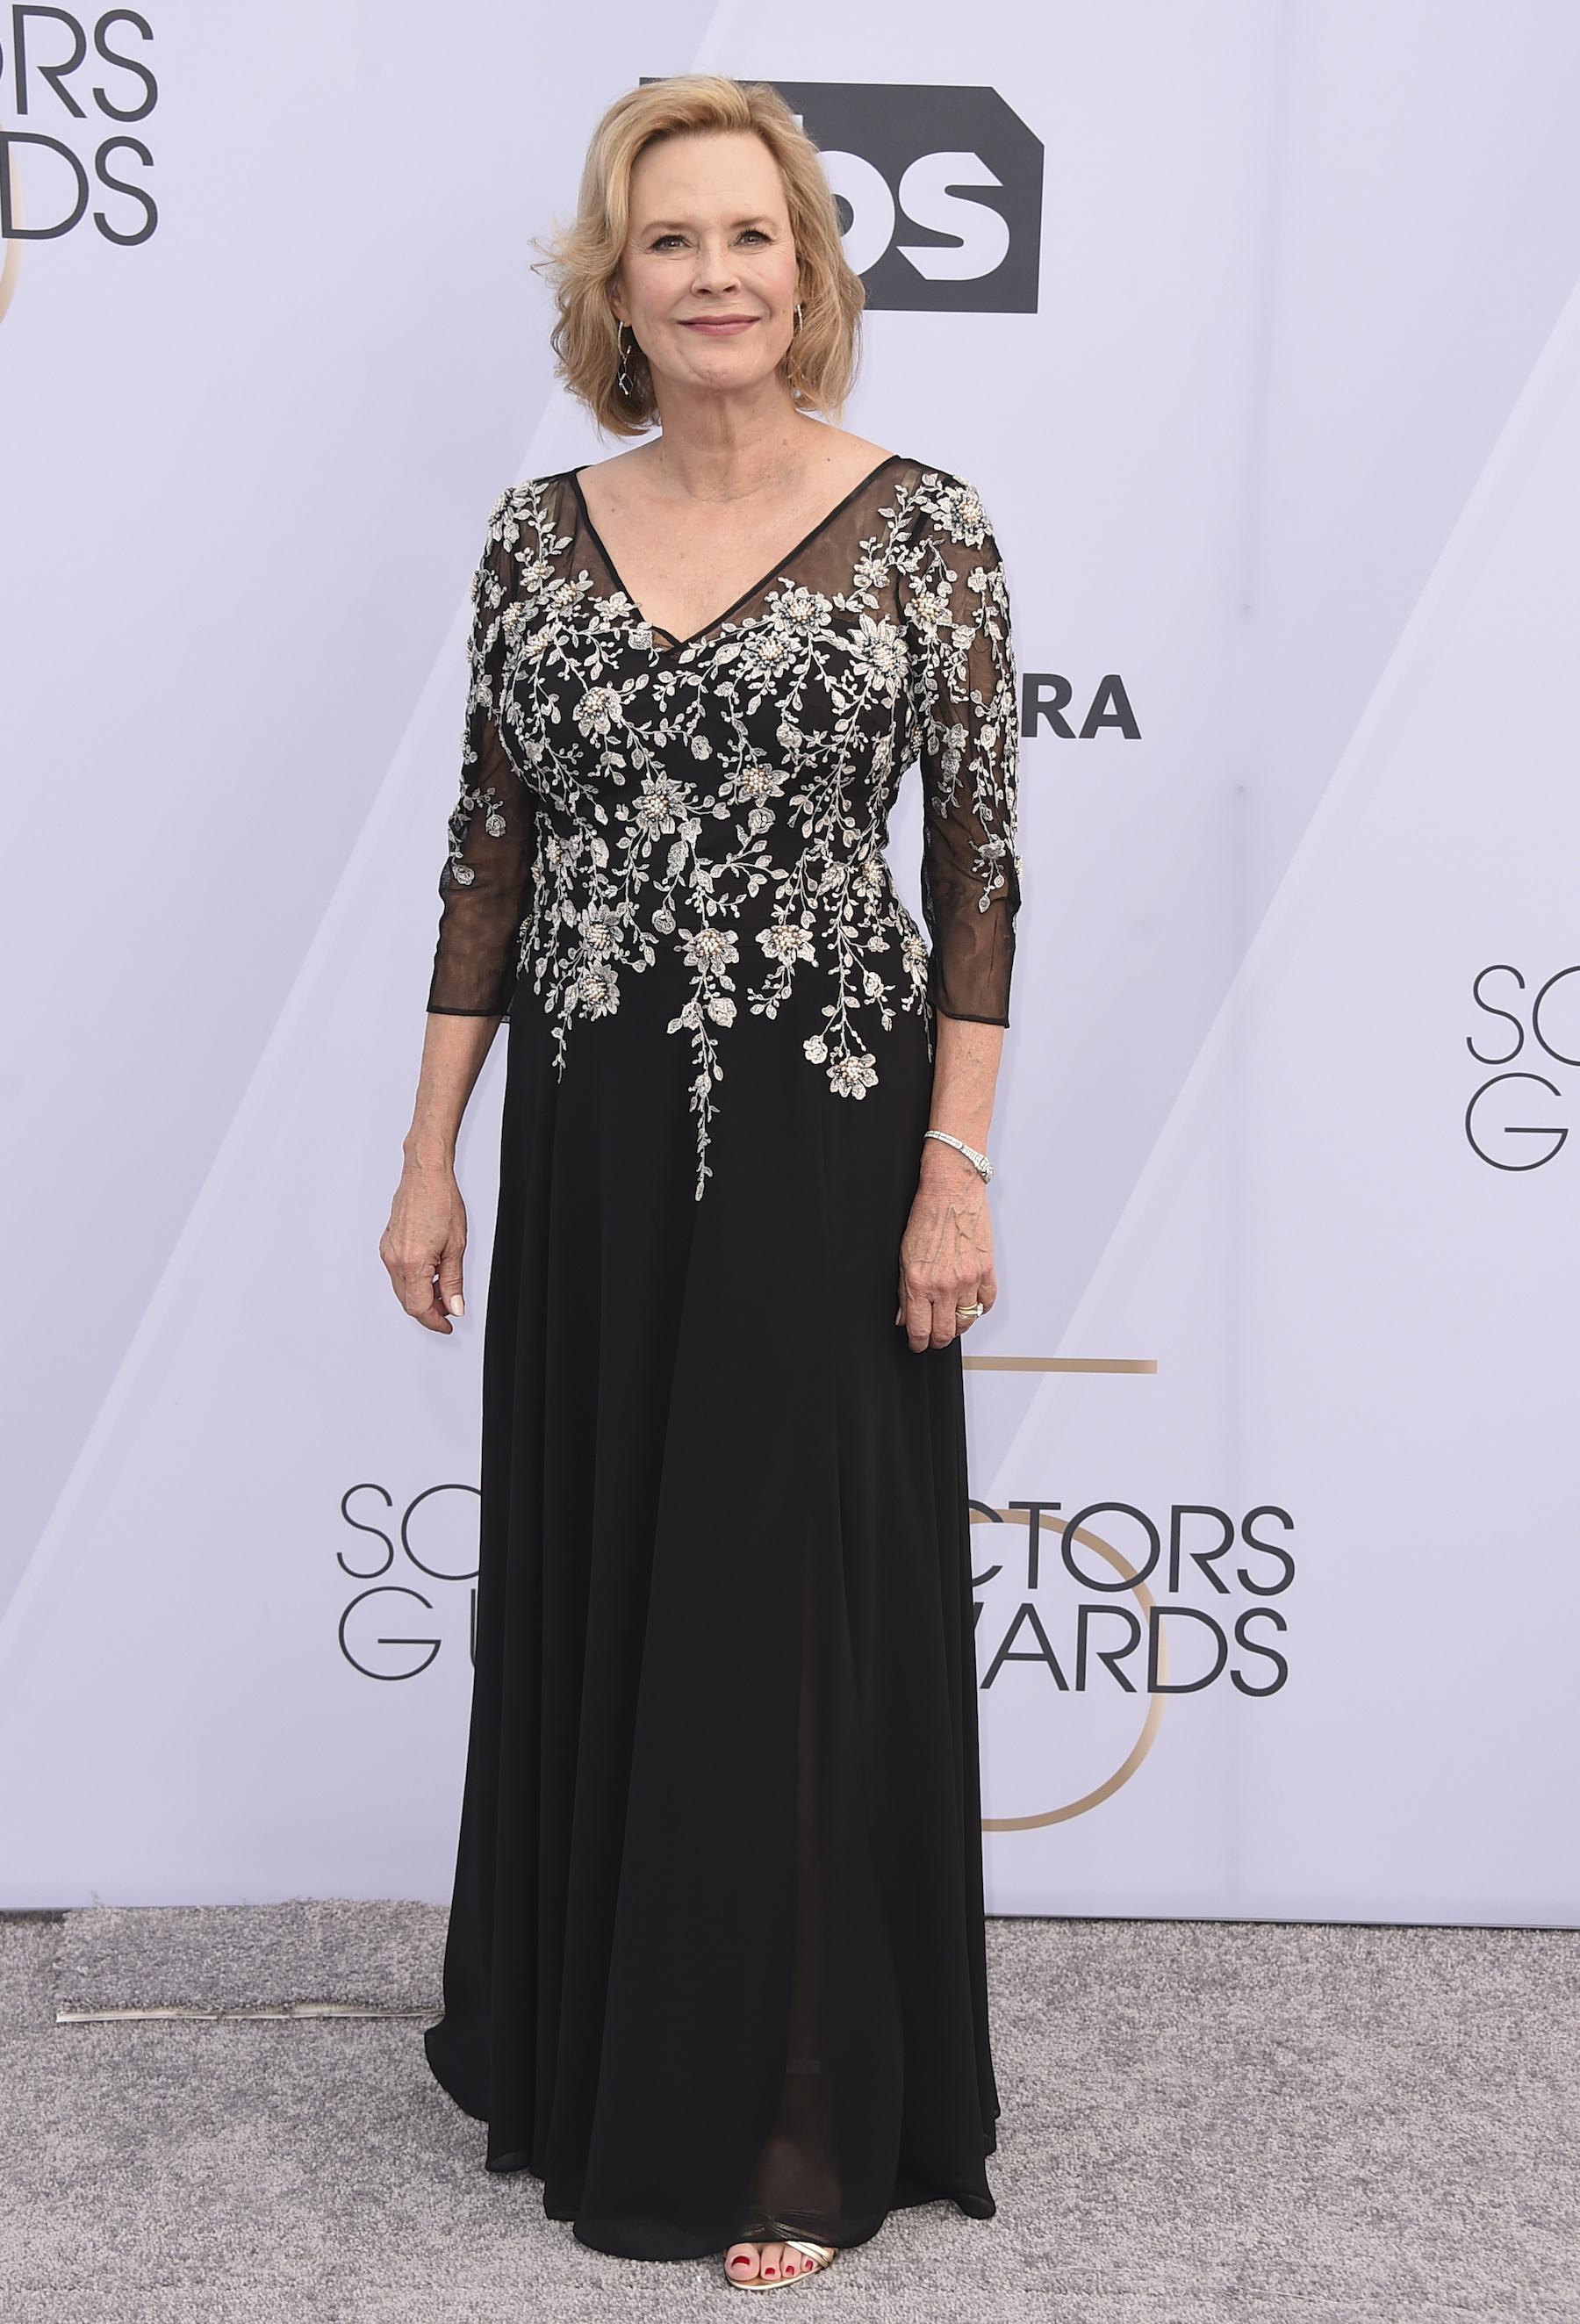 <div class='meta'><div class='origin-logo' data-origin='AP'></div><span class='caption-text' data-credit='Jordan Strauss/Invision/AP'>SAG-AFTRA Foundation President JoBeth Williams arrives at the 25th annual Screen Actors Guild Awards at the Shrine Auditorium & Expo Hall on Sunday, Jan. 27, 2019, in Los Angeles.</span></div>